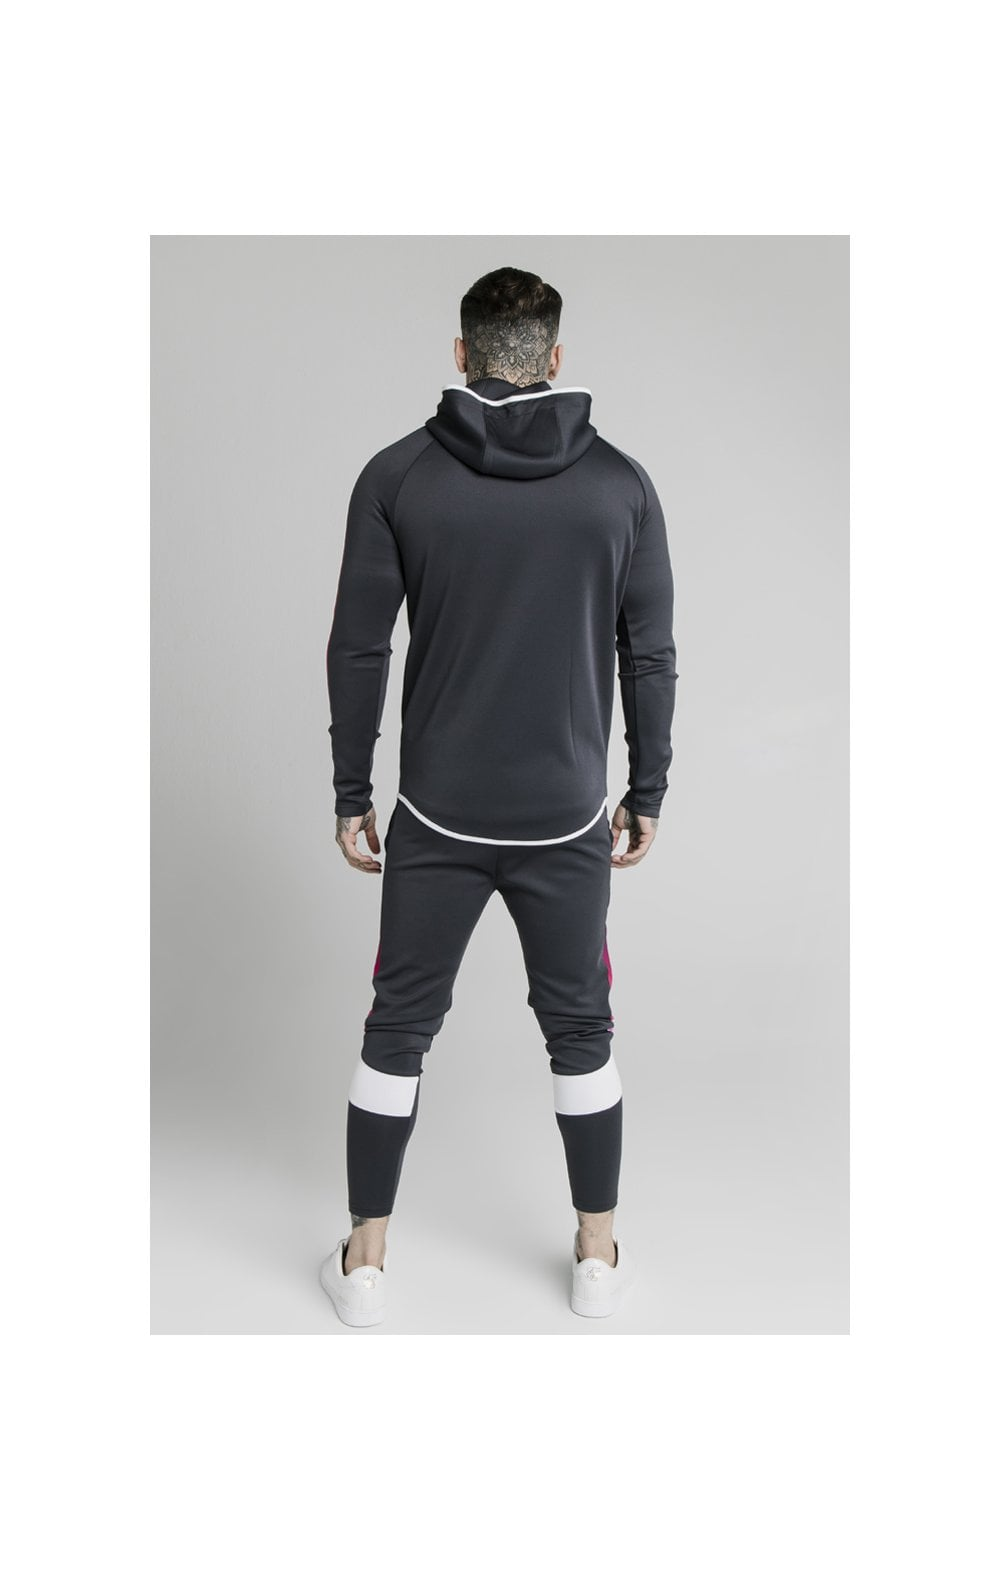 Load image into Gallery viewer, SikSilk Advanced Tech Zip Through Hoodie - Midnight Grey (4)